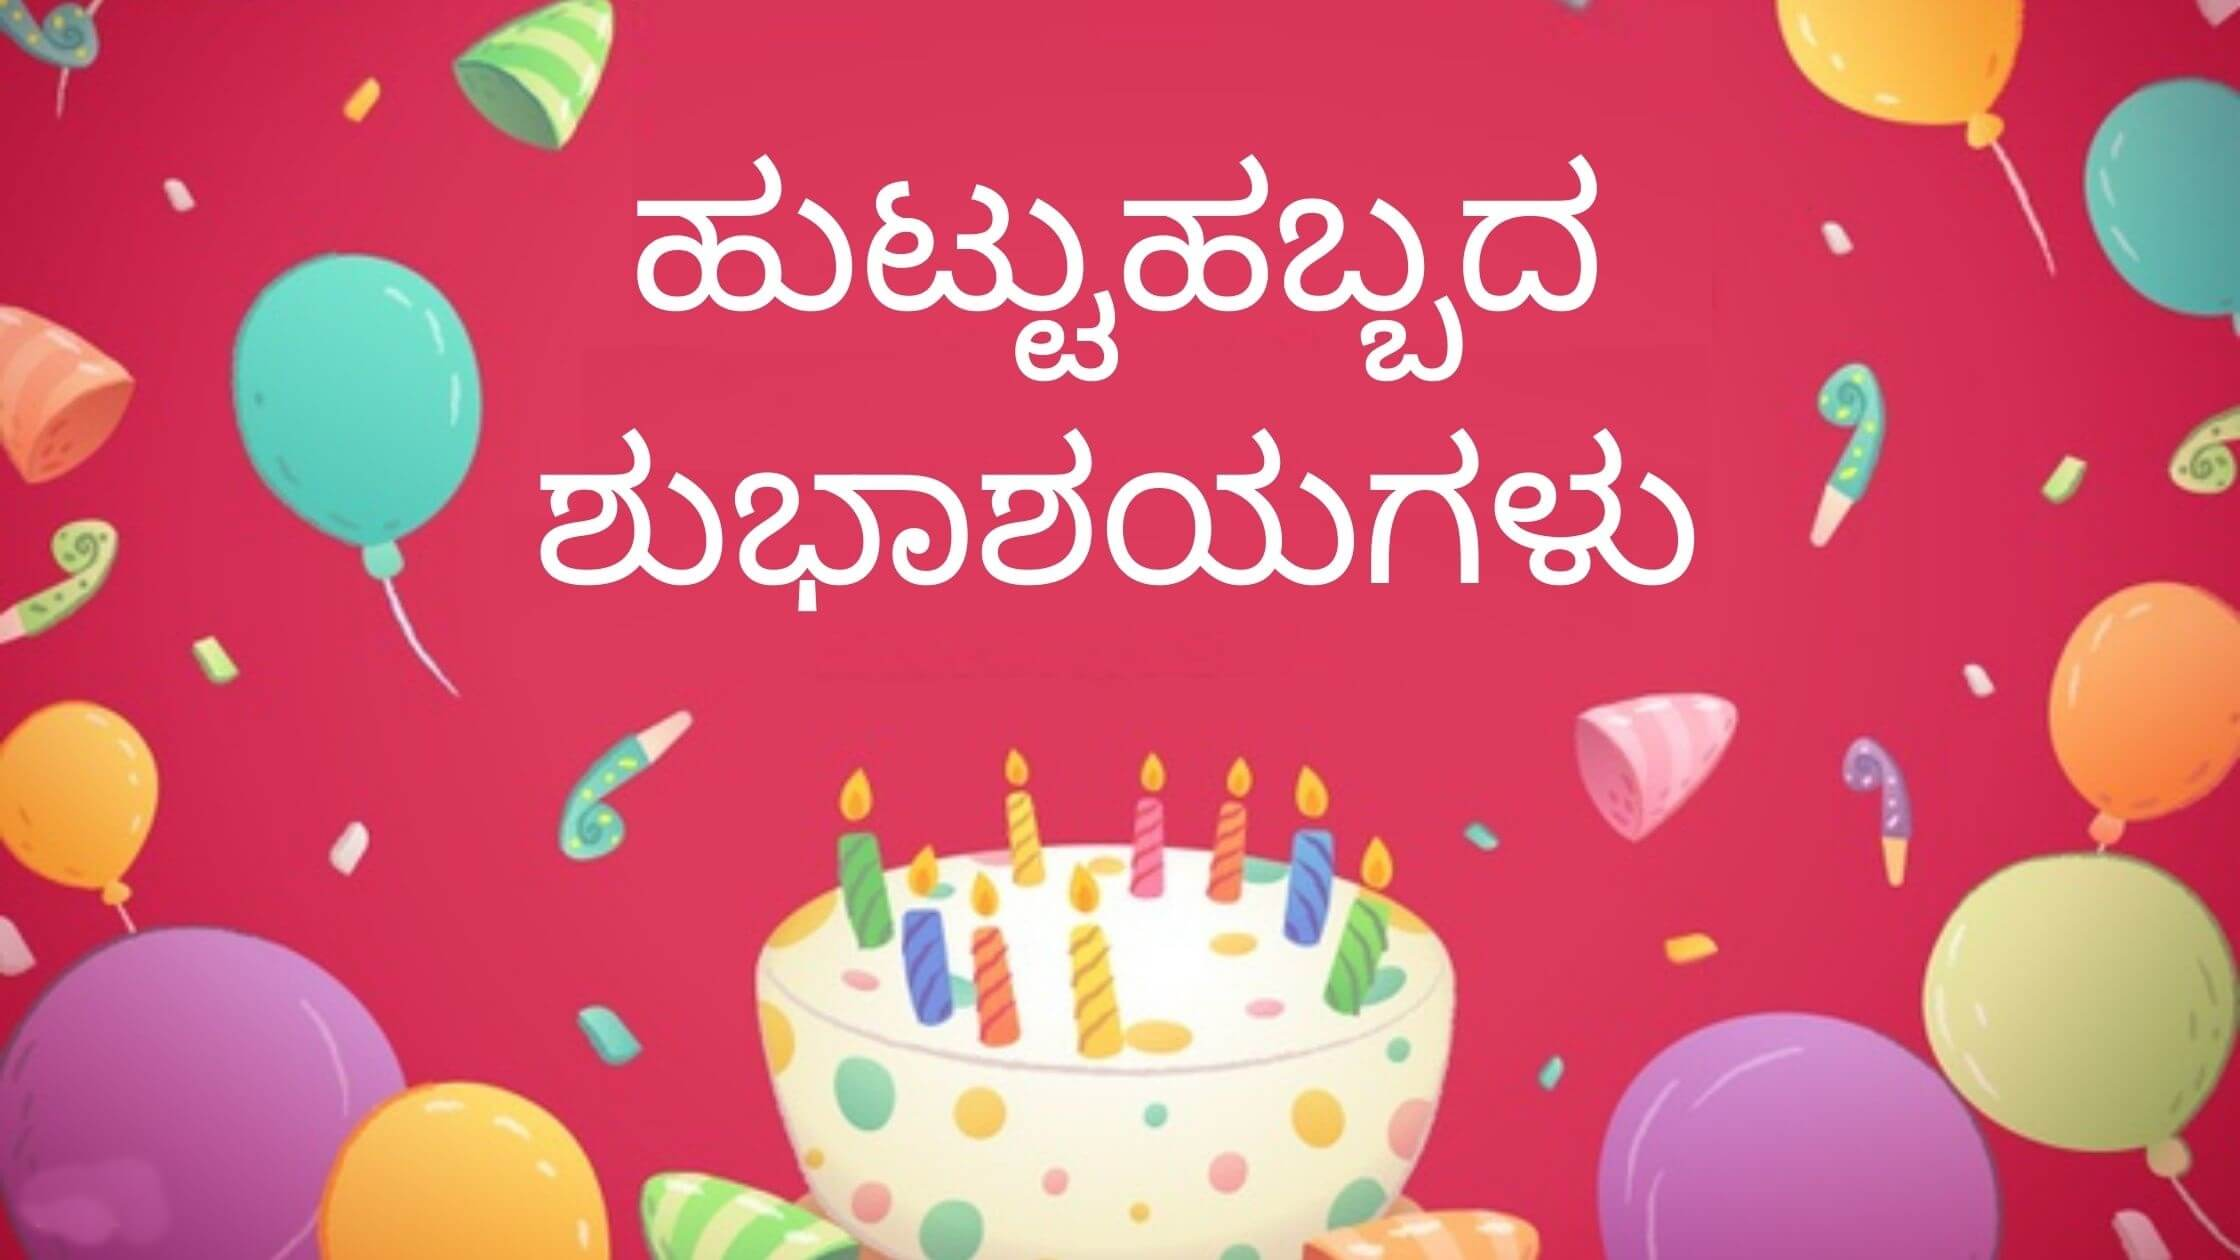 Happy Birthday Wishes in Kannada Balloons